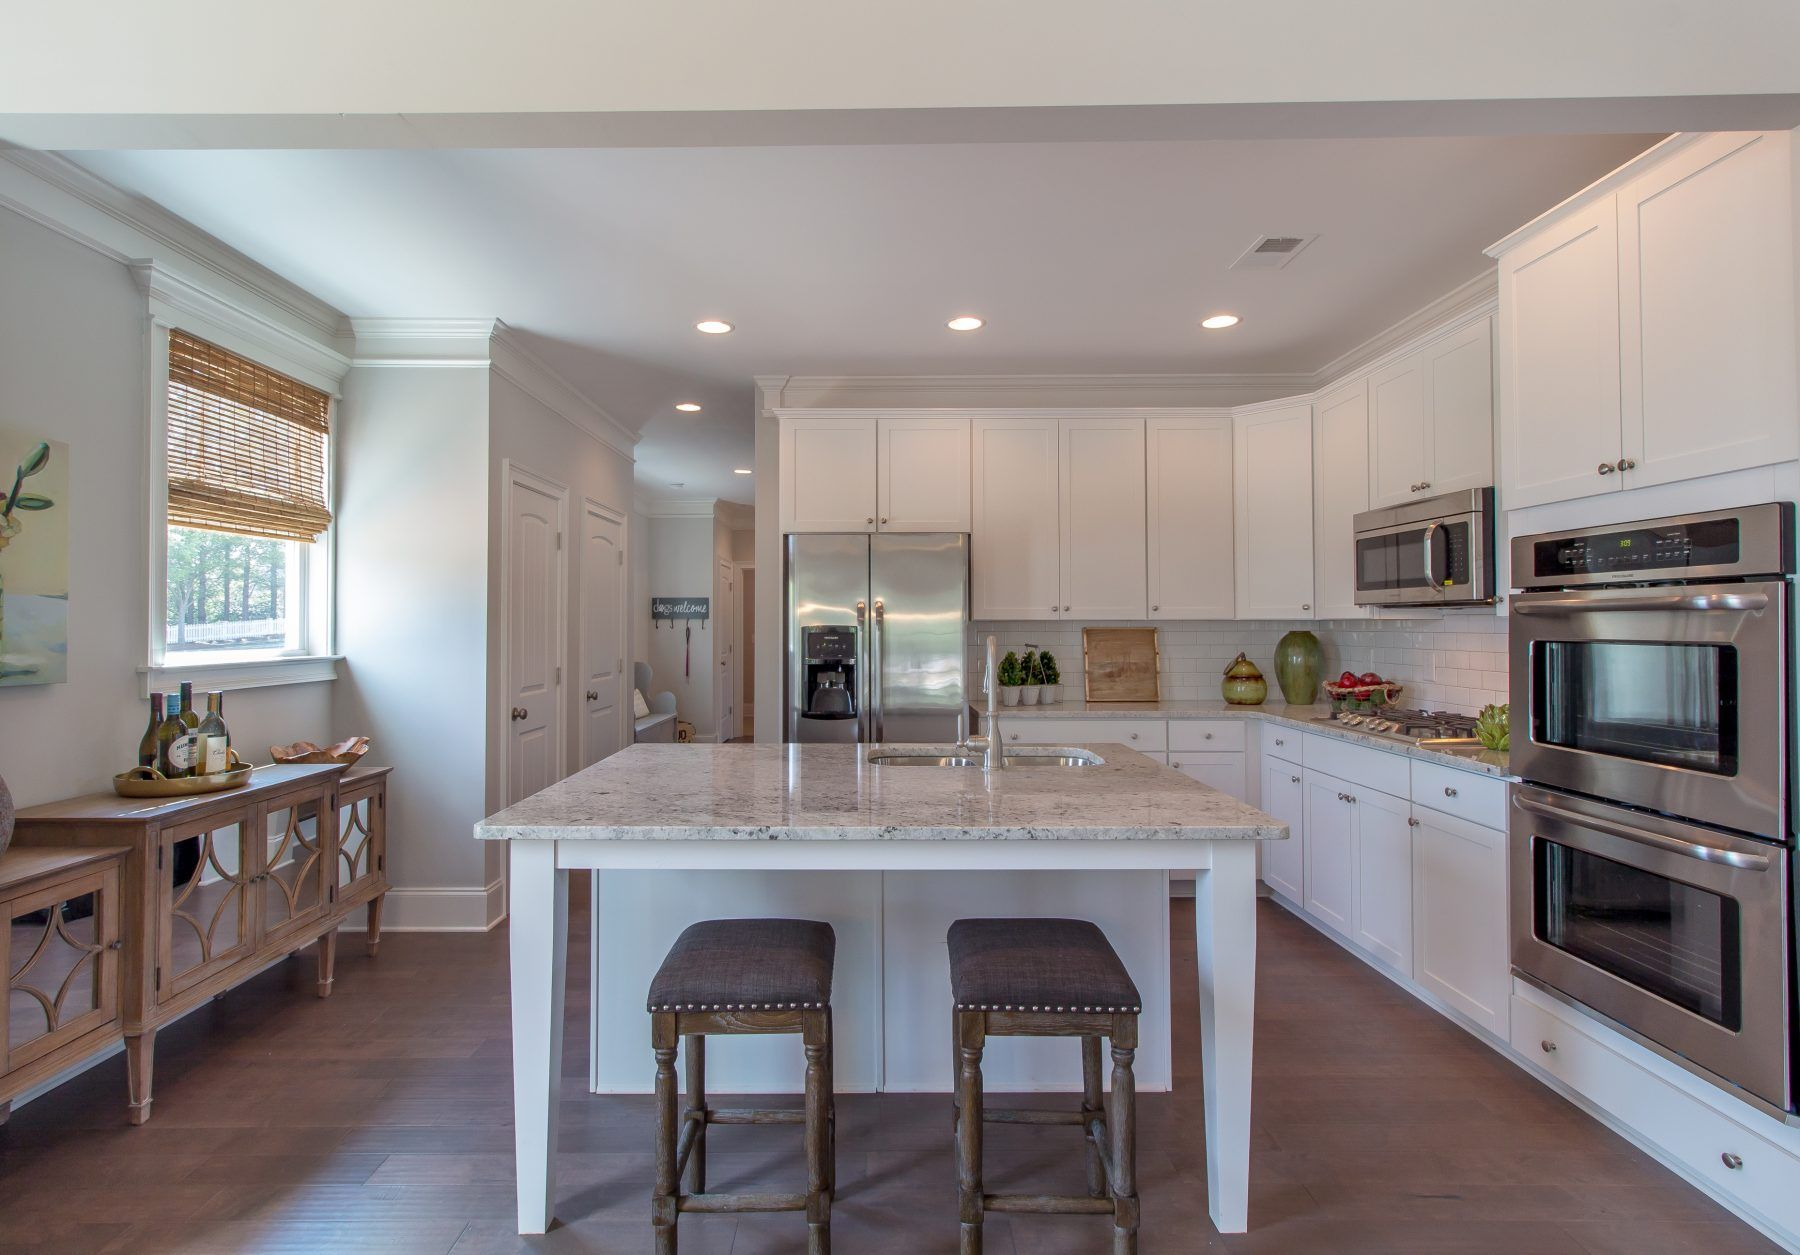 Building kitchen island  Beautiful kitchen island and stainless doulbe ovens  Paran Homes